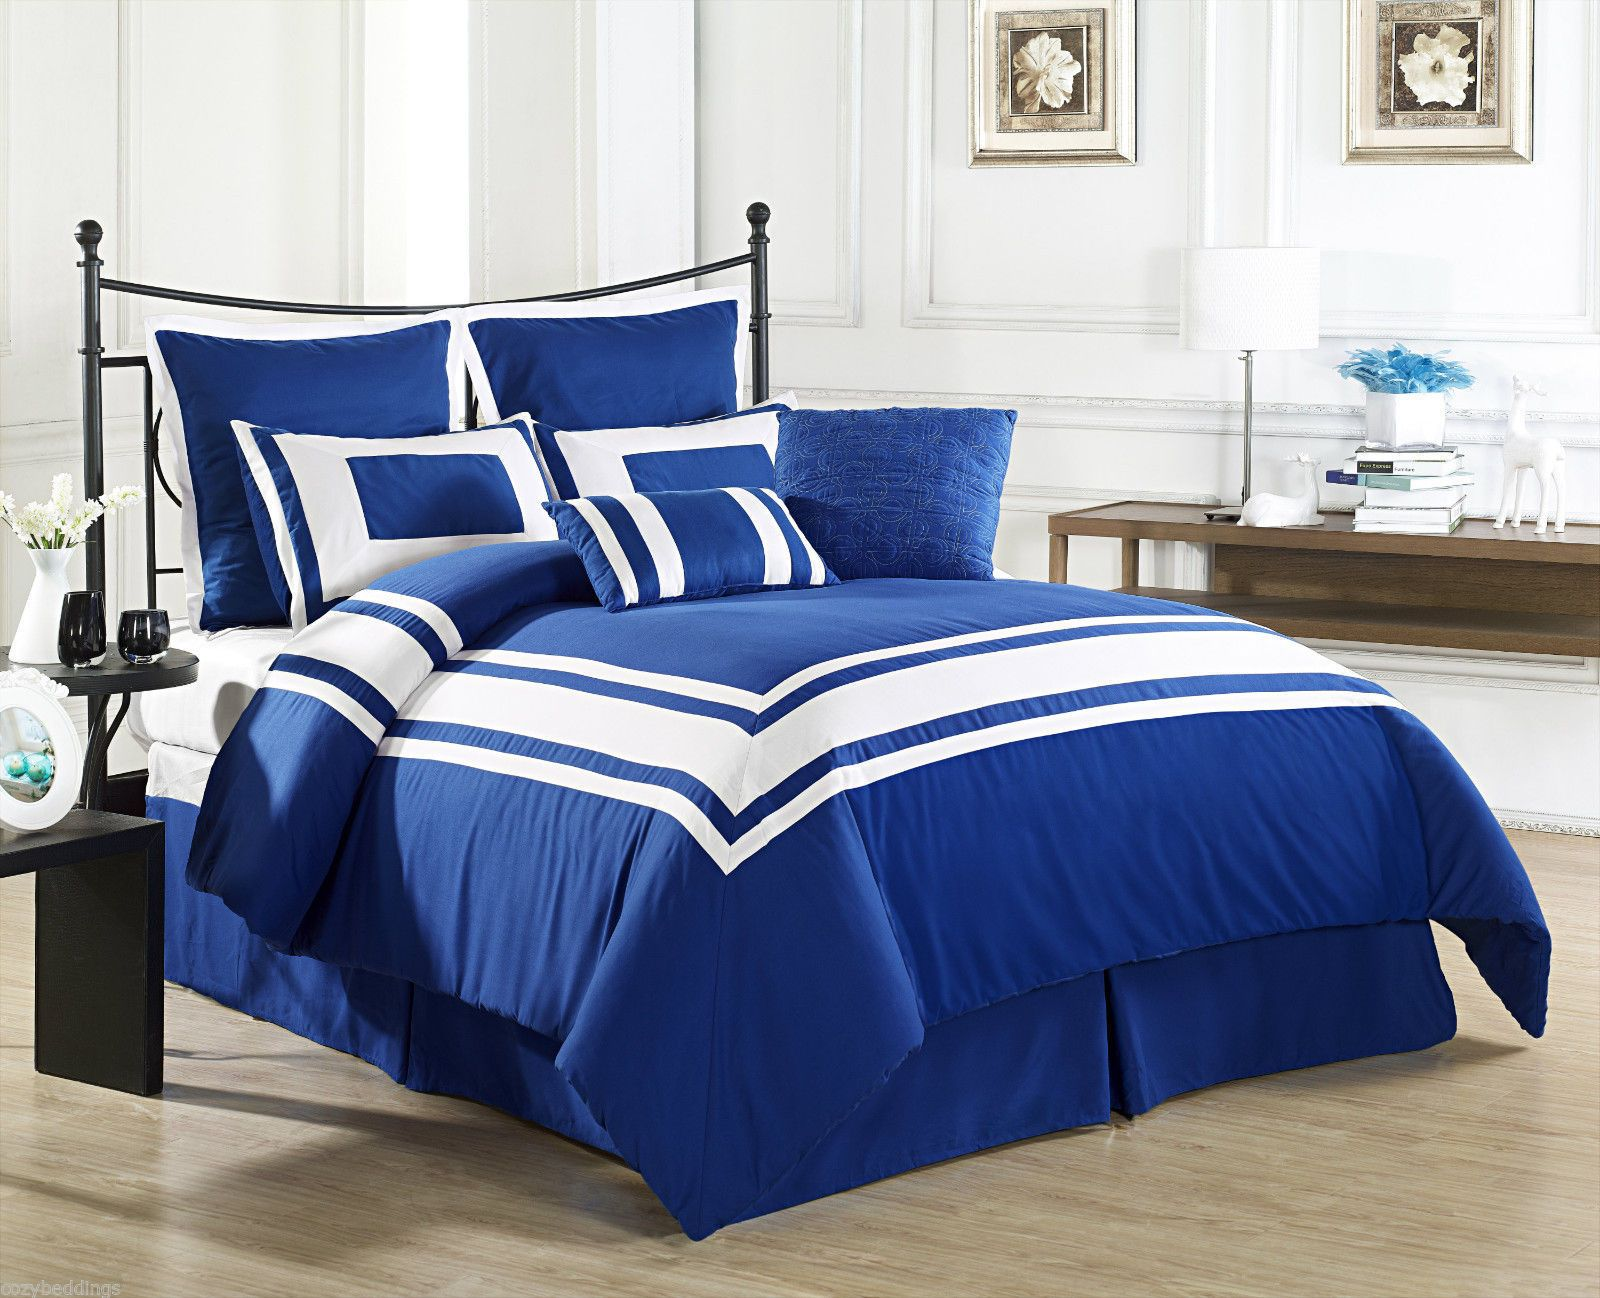 Blue and white bedding - Lux Decor Royal Blue Queen Size Bed 8 Piece Comforter Set White Stripe Bedding